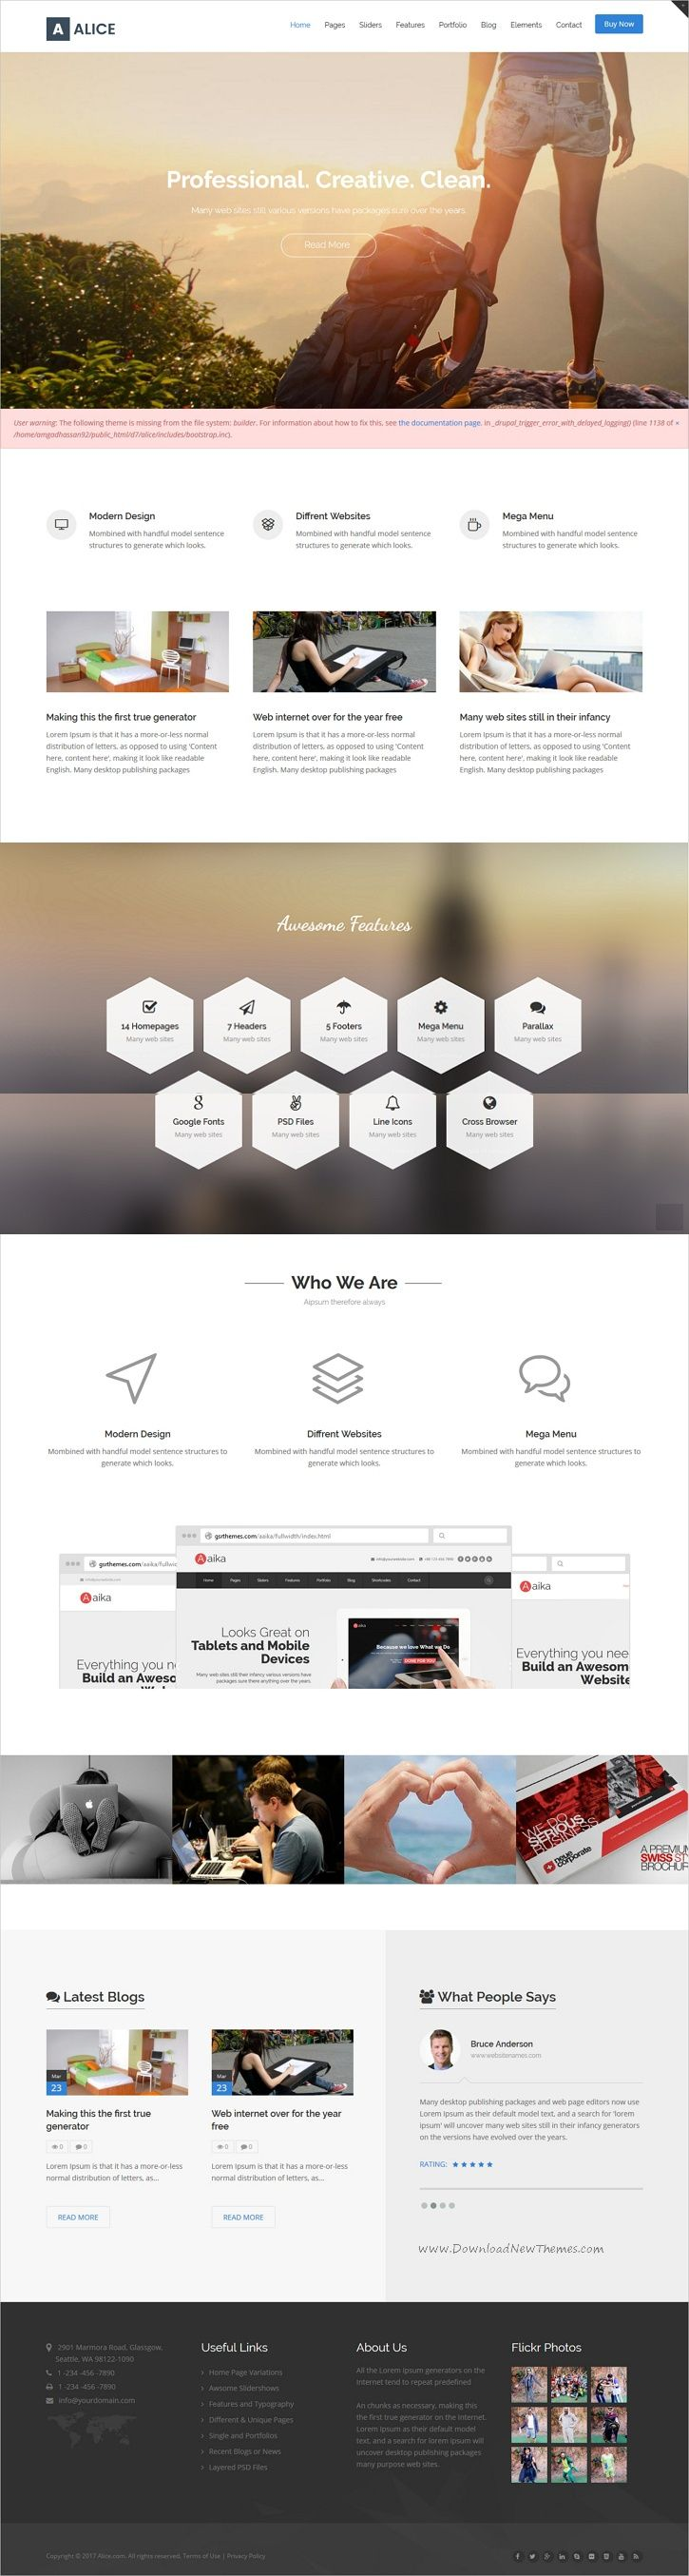 Alice is clean and modern design 14in1 multipurpose responsive #Drupal theme for stunning #corporate website download now➩ https://themeforest.net/item/alice-multipurpose-drupal-theme/19772223?ref=Datasata